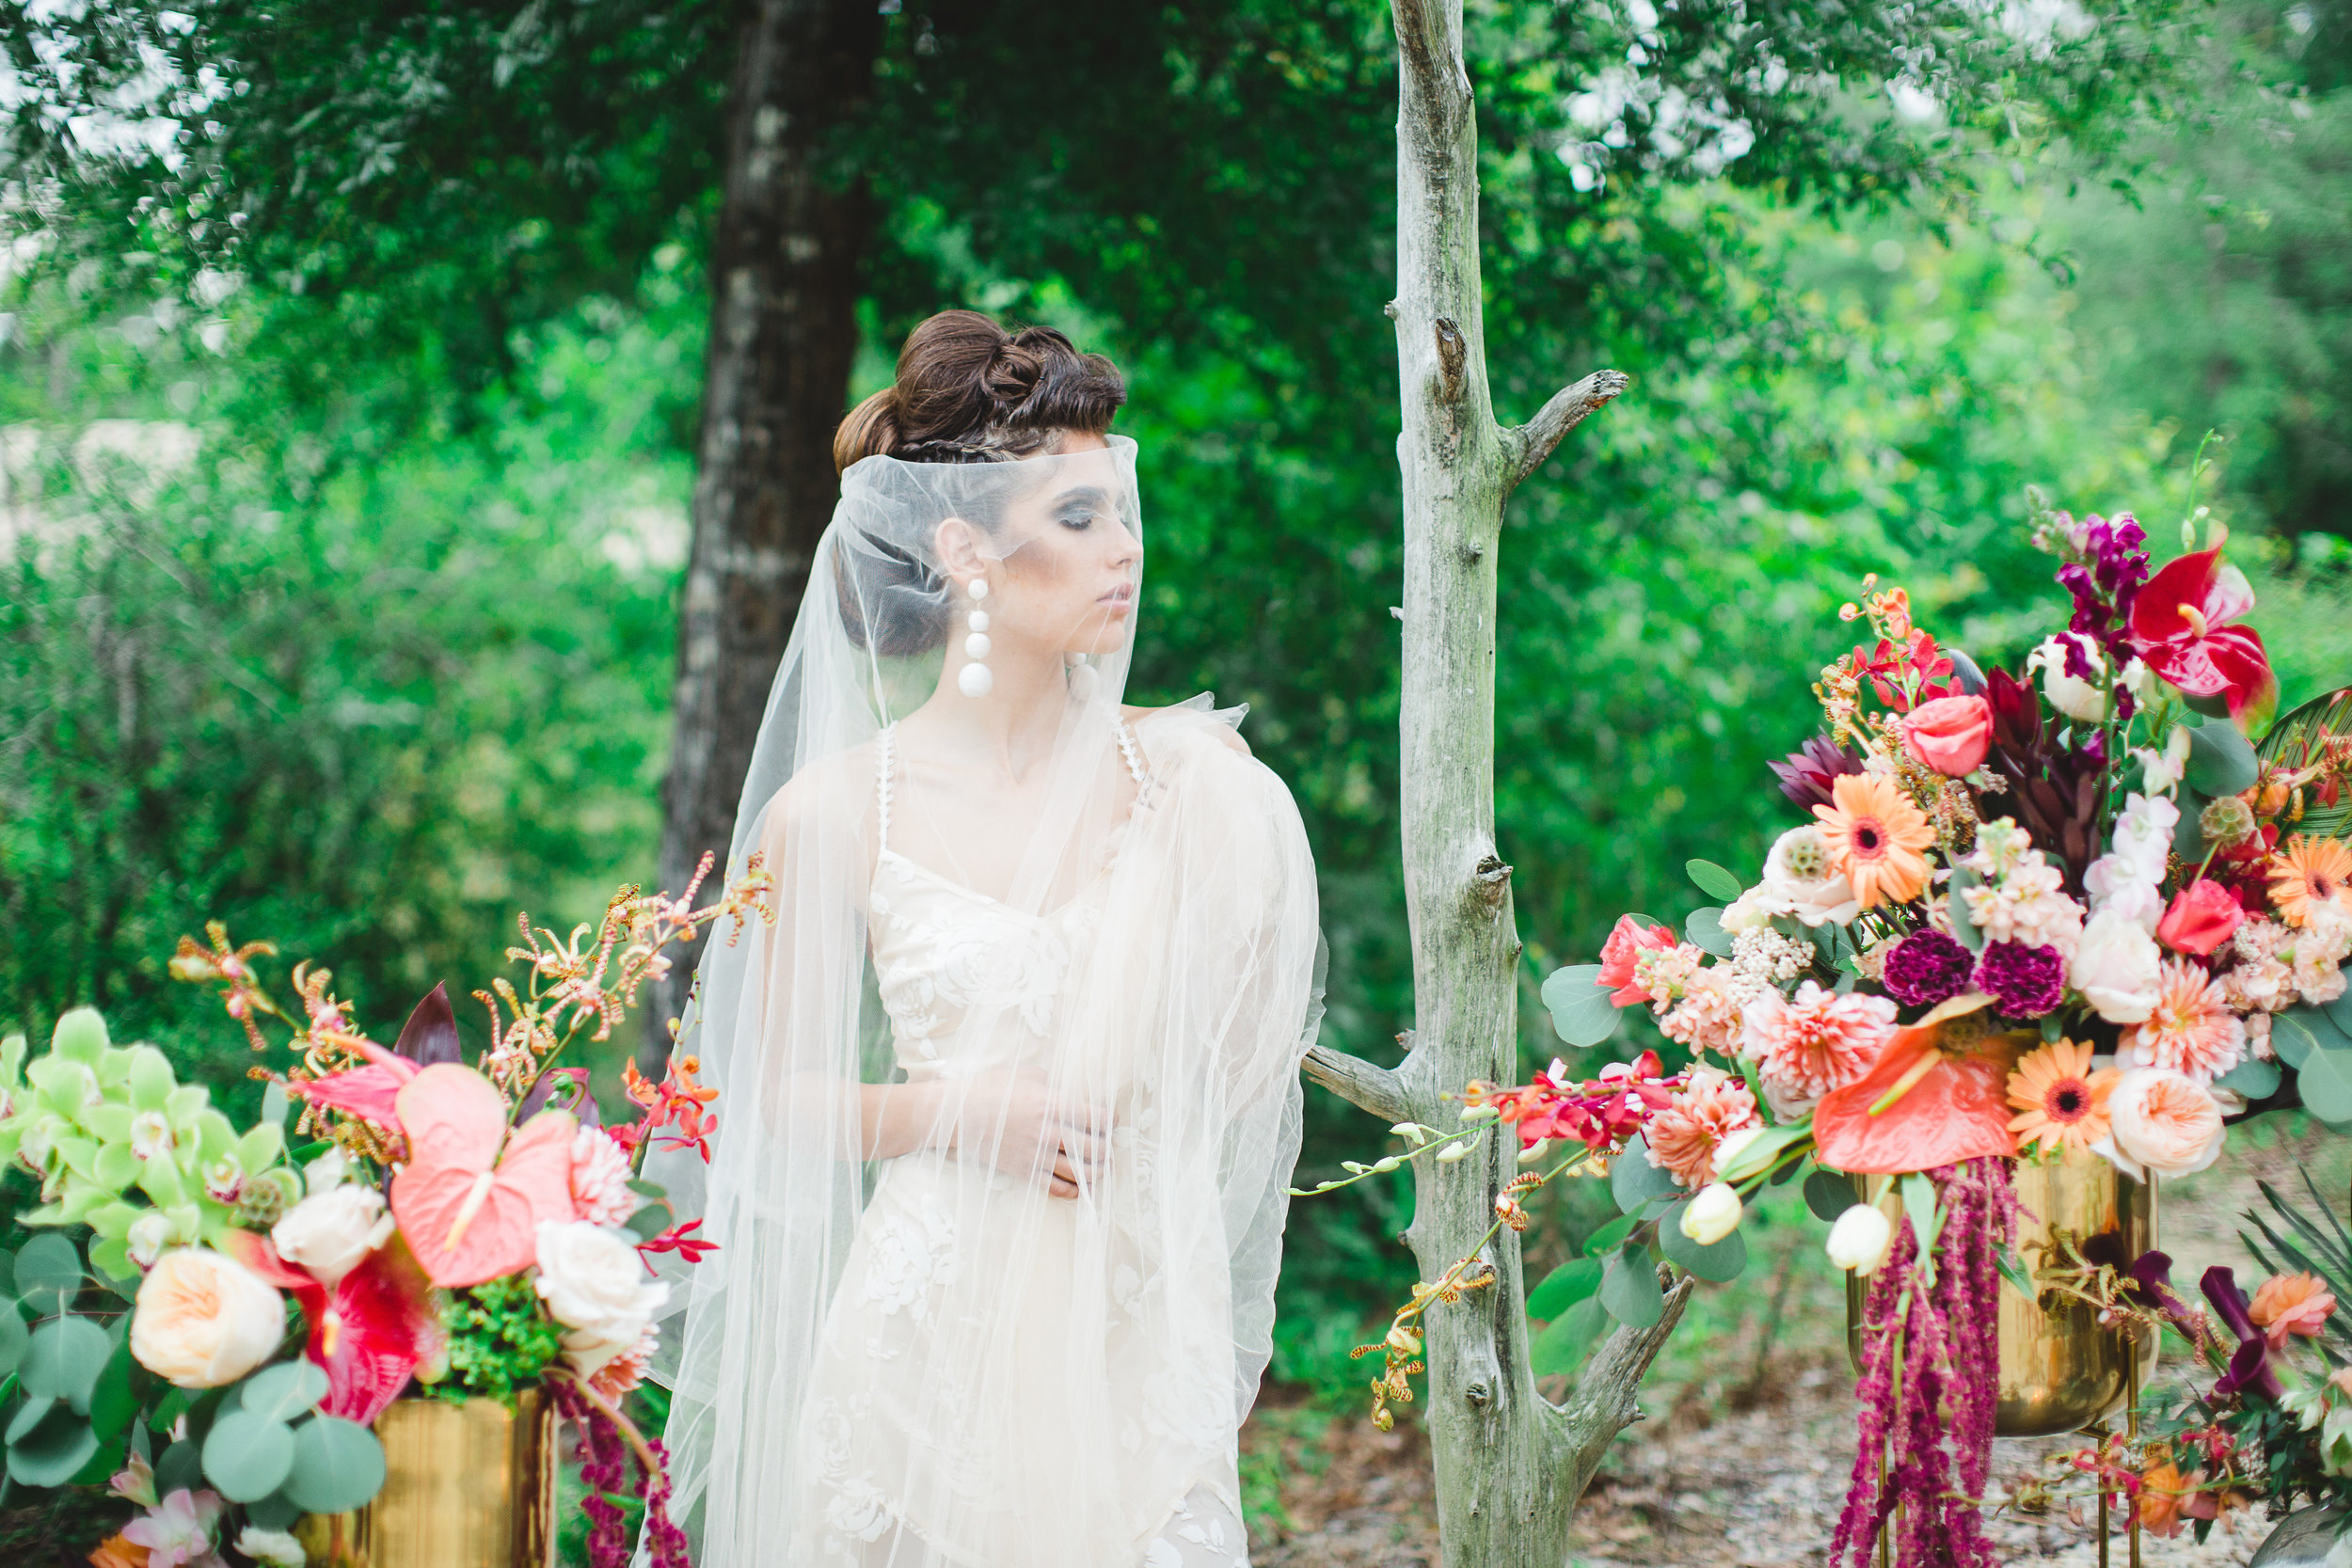 izzy-hudgins-photography-emily-burton-designs-ivory-and-beau-bridal-boutique-daughters-of-simone-sonje-jenny-yoo-bridesmaids-glamping-wedding-boho-wedding-outdoor-wedding-coldwater-gardens-wedding-savannah-bridal-boutique-savannah-wedding-planner-24.jpg